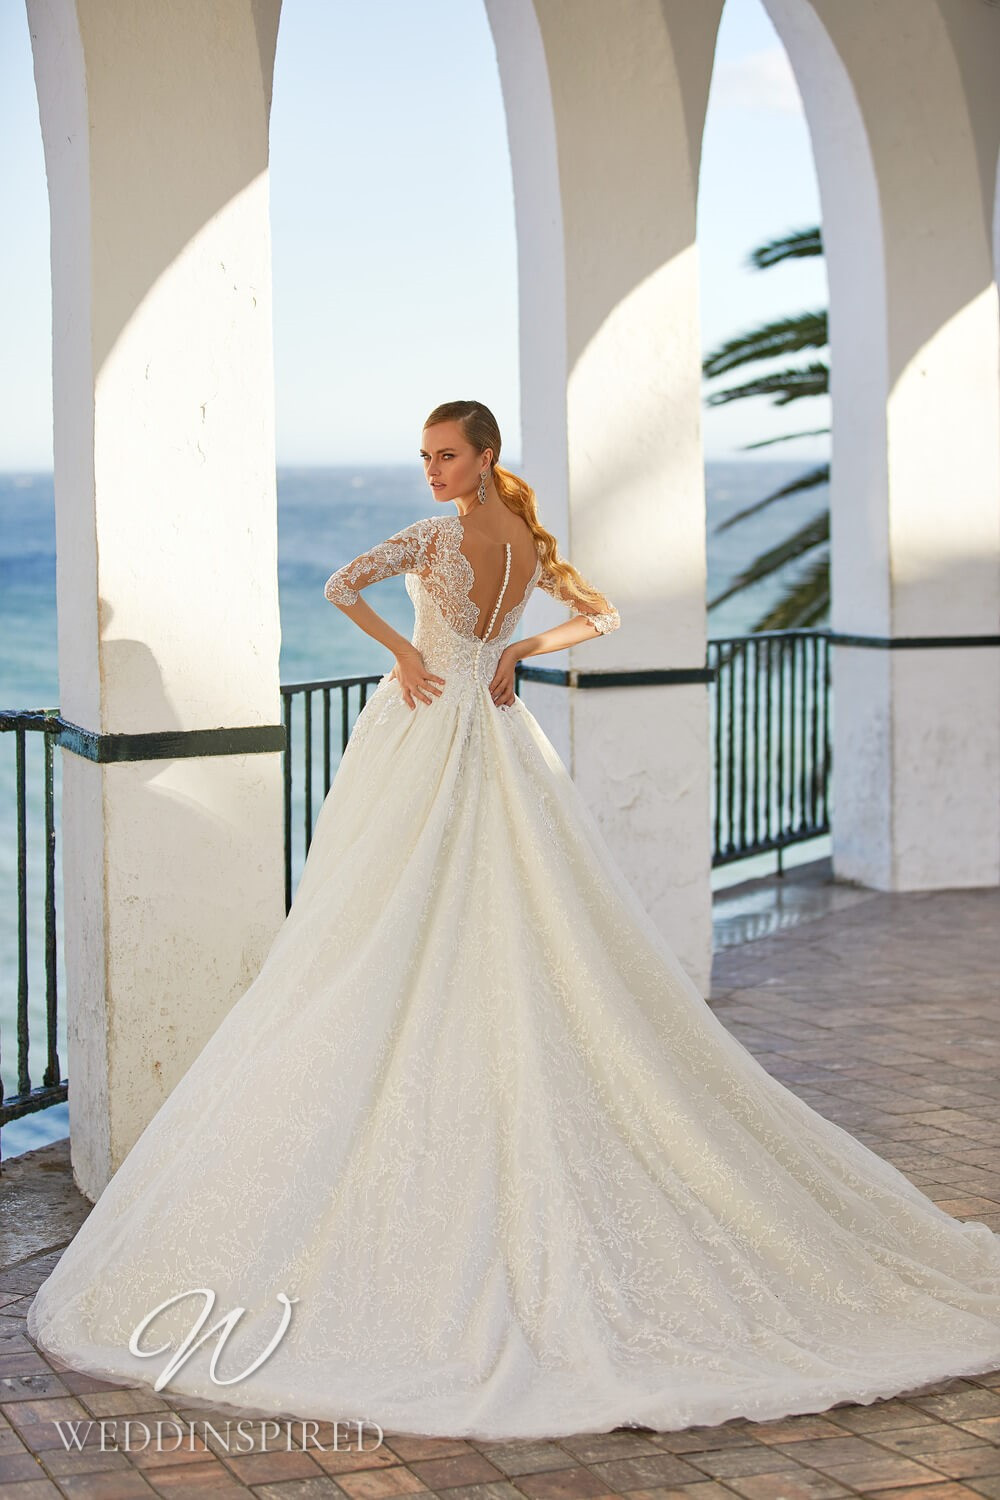 An Essential by Lussano 2021 lace princess wedding dress with long sleeves